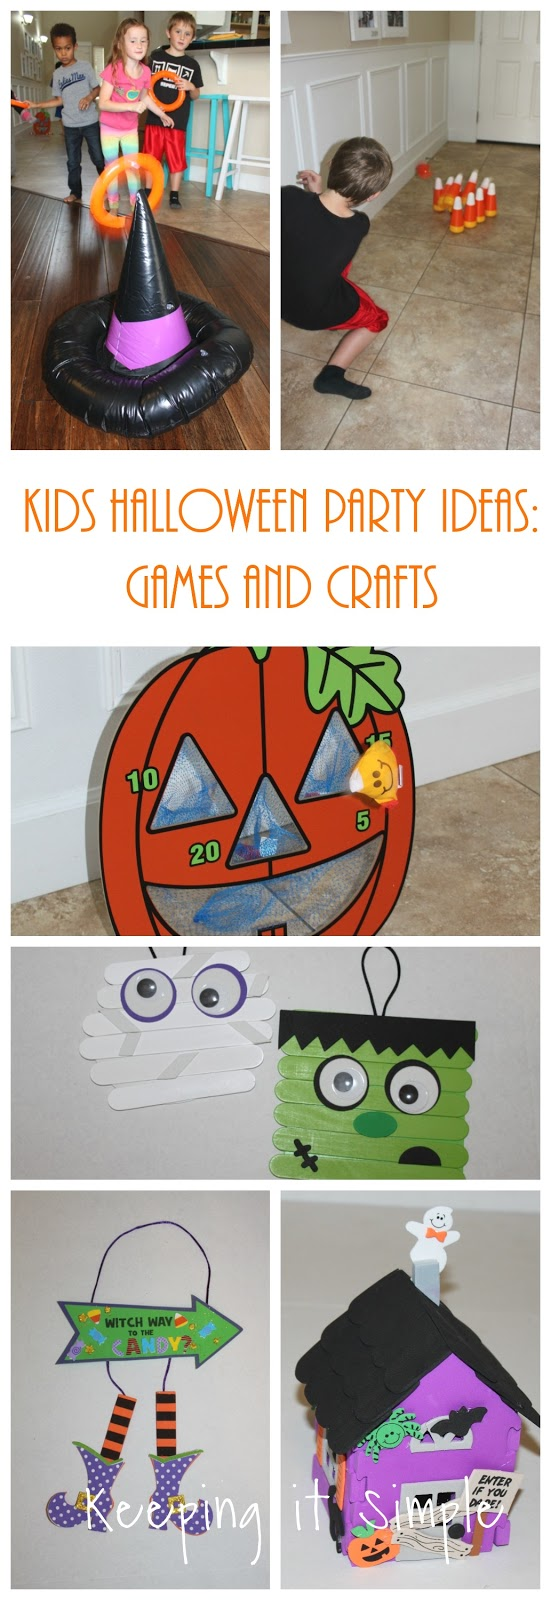 Keeping it Simple: Kids Halloween Party Ideas- Games and Crafts